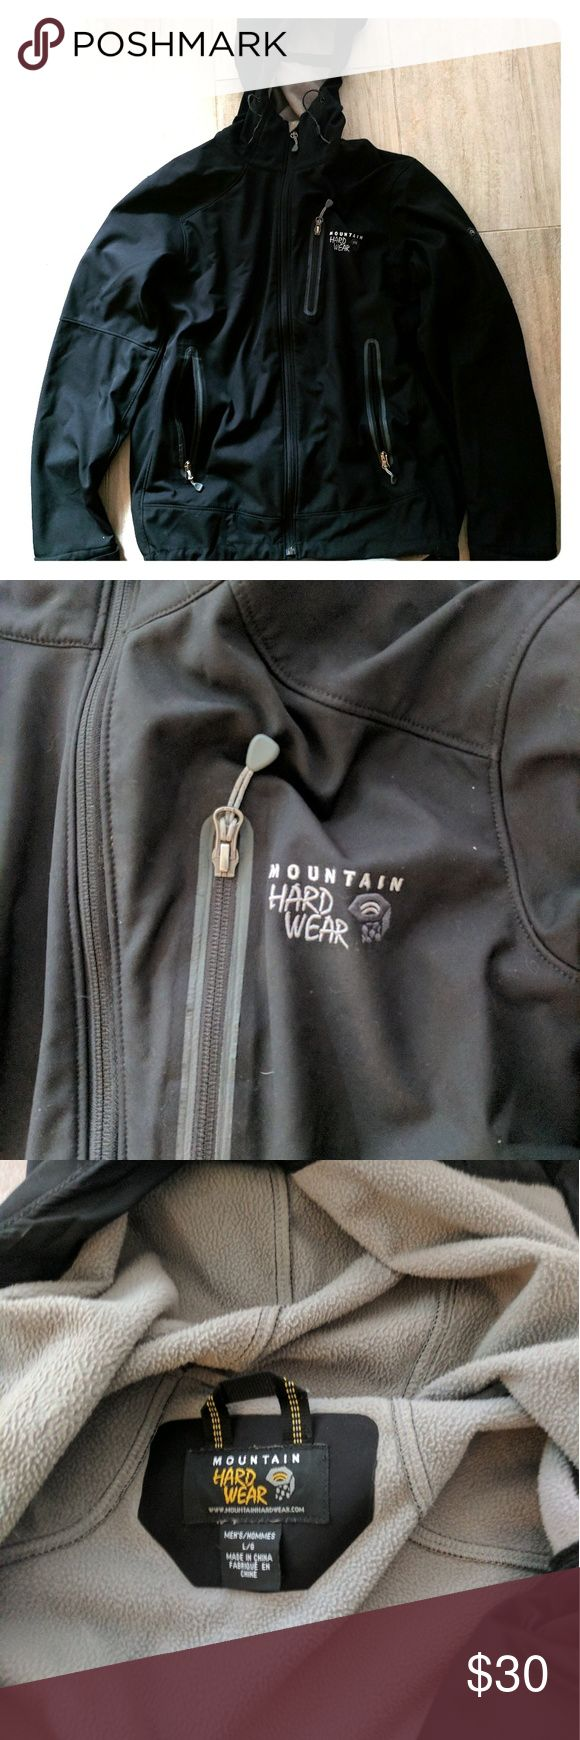 Warm men's outdoor jacket This light windbreaker is lined with fleece for ultra comfort and cozy factor. Good condition. Hood and multiple adjustable cords Mountain Hard Wear Jackets & Coats